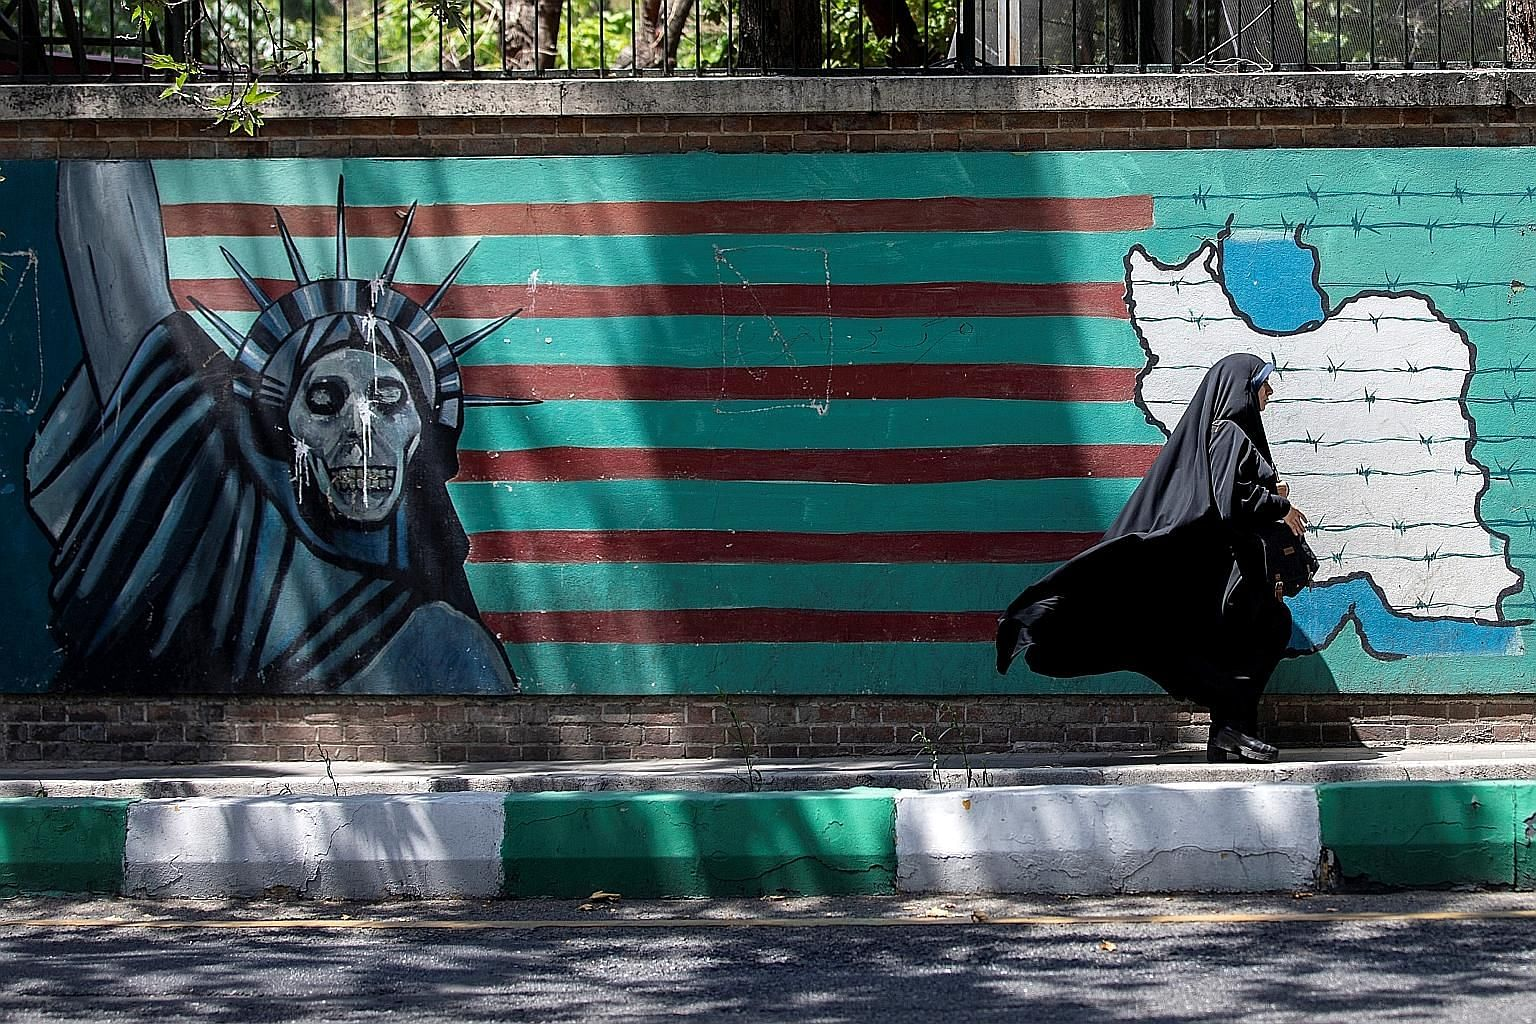 A mural showing the Statue Of Liberty painted with a skull face in Teheran. Iran has said that it would be Washington's fault if it exceeds the 300kg stockpile threshold as the 2015 nuclear deal allows Iran to sell excess uranium abroad to keep its s